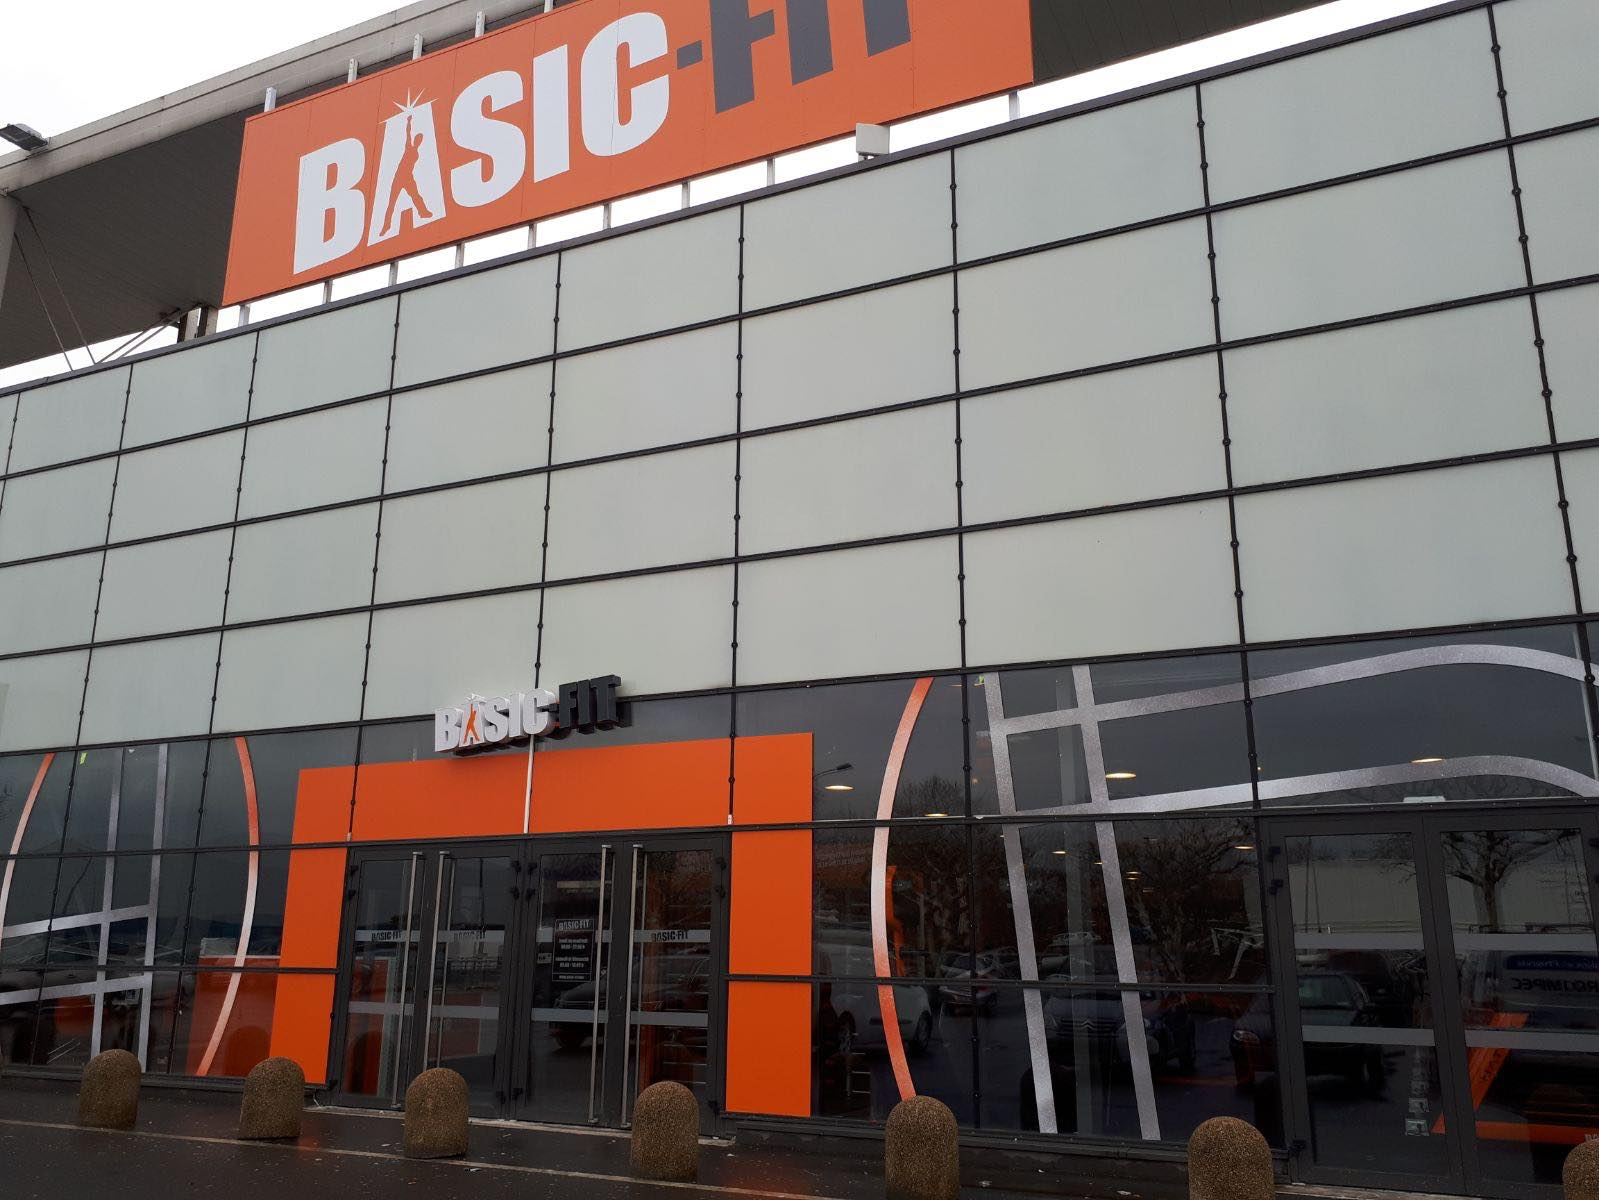 BASIC FIT Bacalan